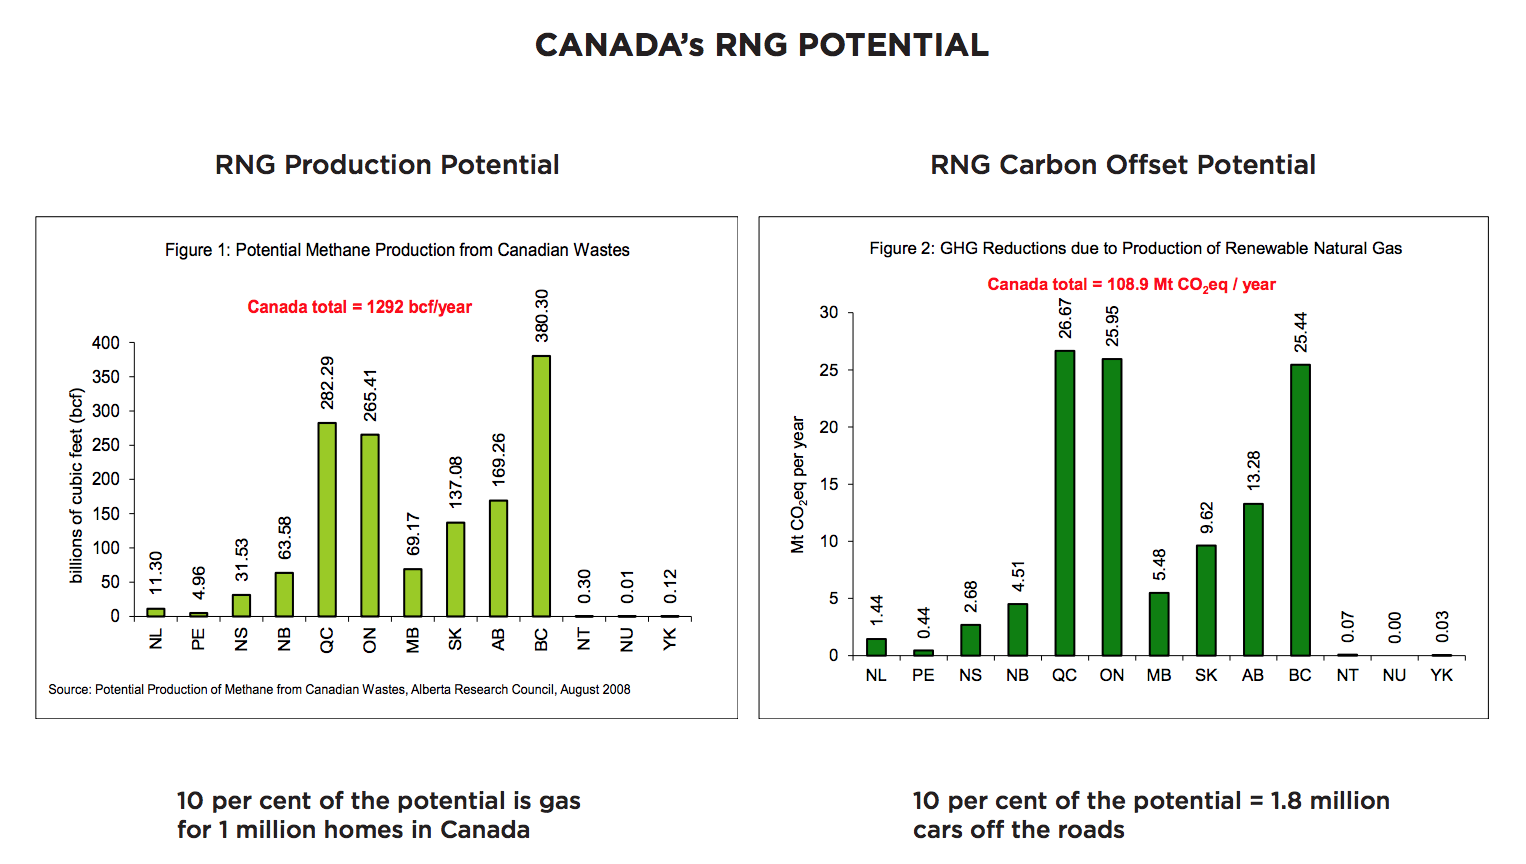 Canada's renewable natural gas Production Potential